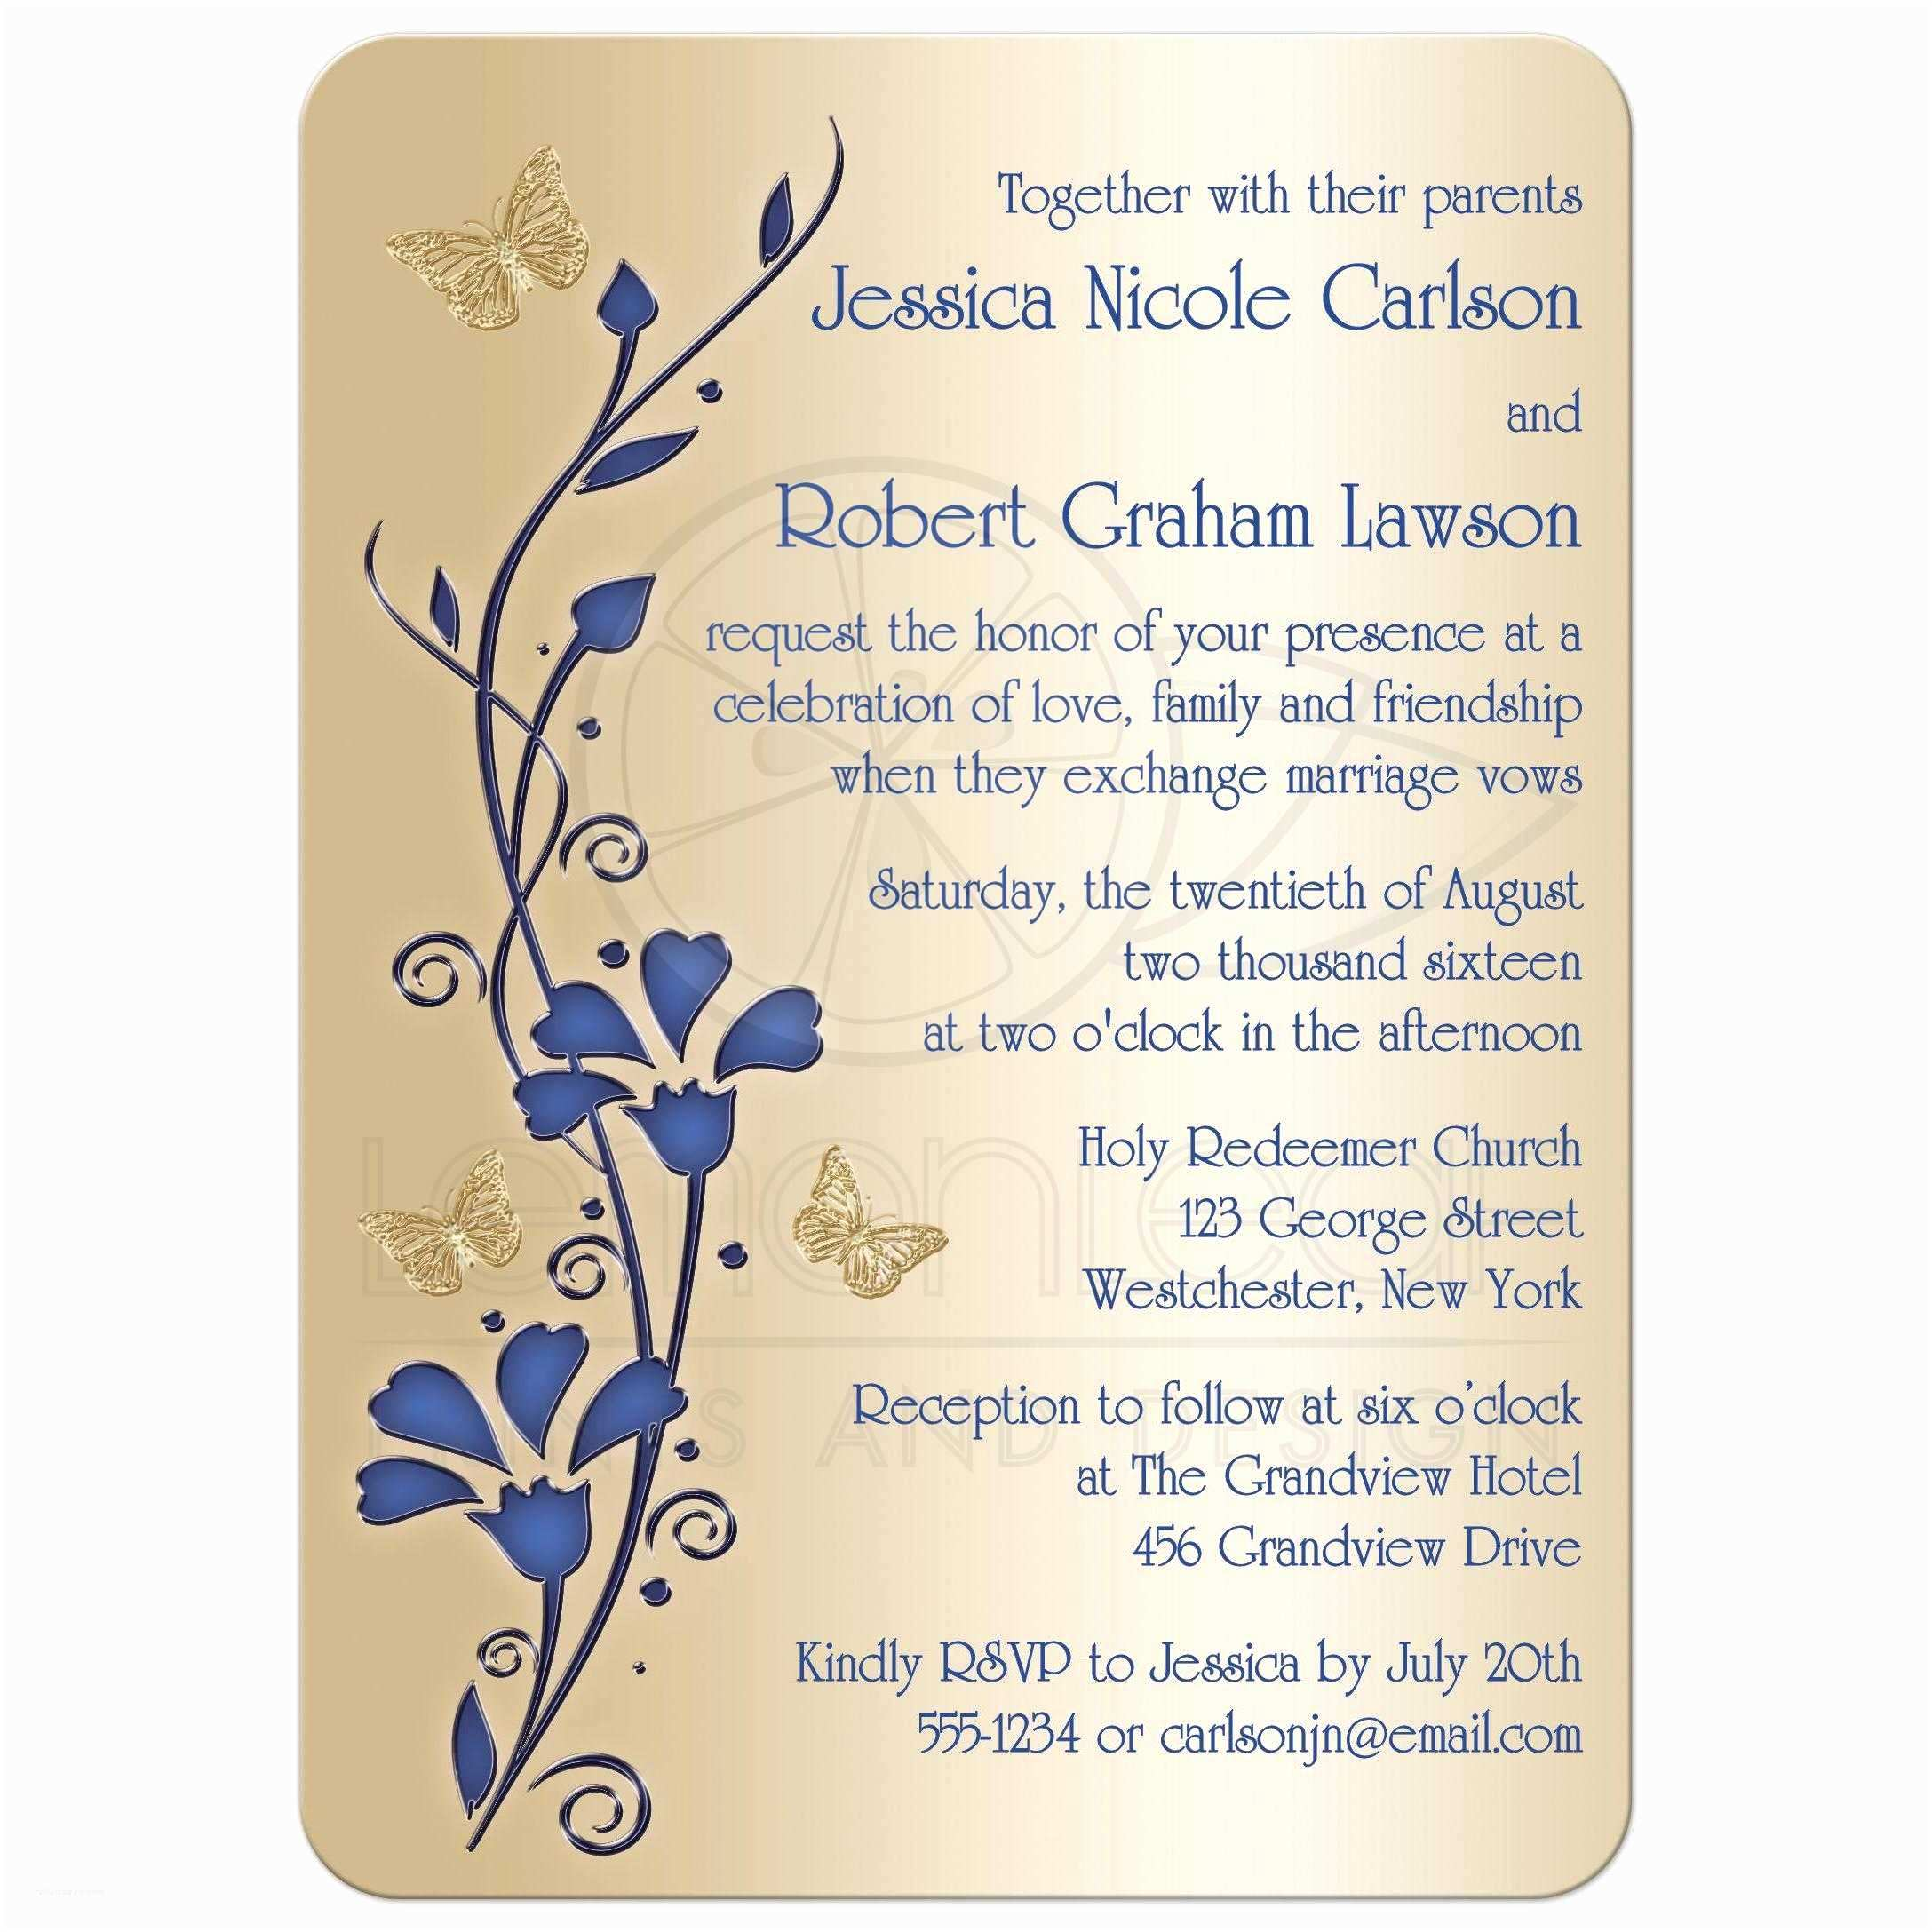 Royal Blue and Gold Wedding Invitations Wedding Invitation Royal Blue and Gold